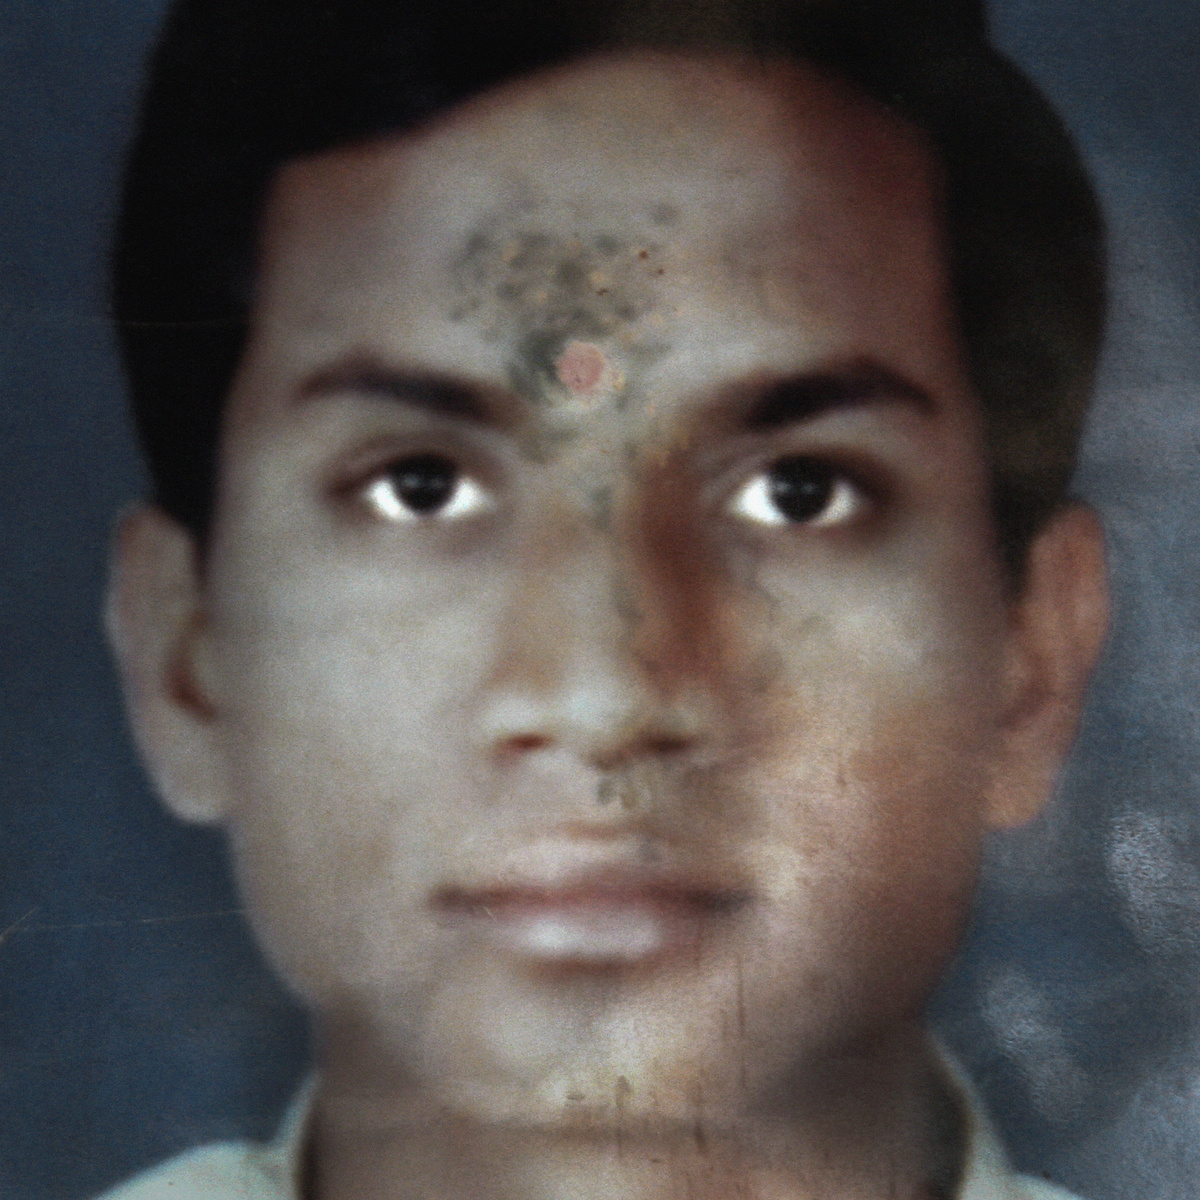 Krunal Motiram Wasake, 28, threw himself down a well outside his family's house on December 30, 2009. He owed 8,000 Indian rupees (US$114).